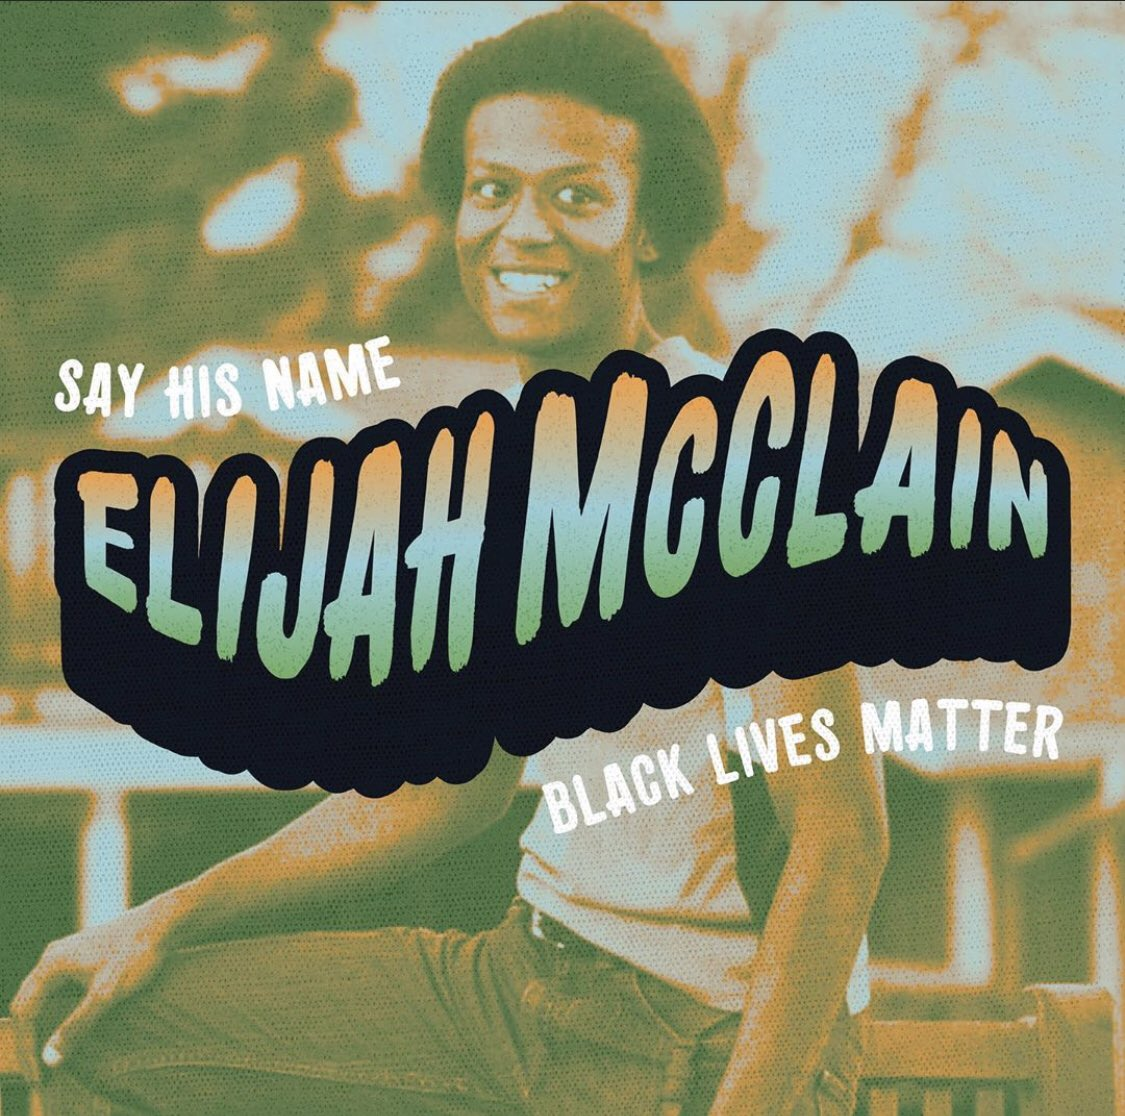 Here are a list of recourses to DEMAND JUSTICE for #ElijahMcClain ✊🏾🙏🏾